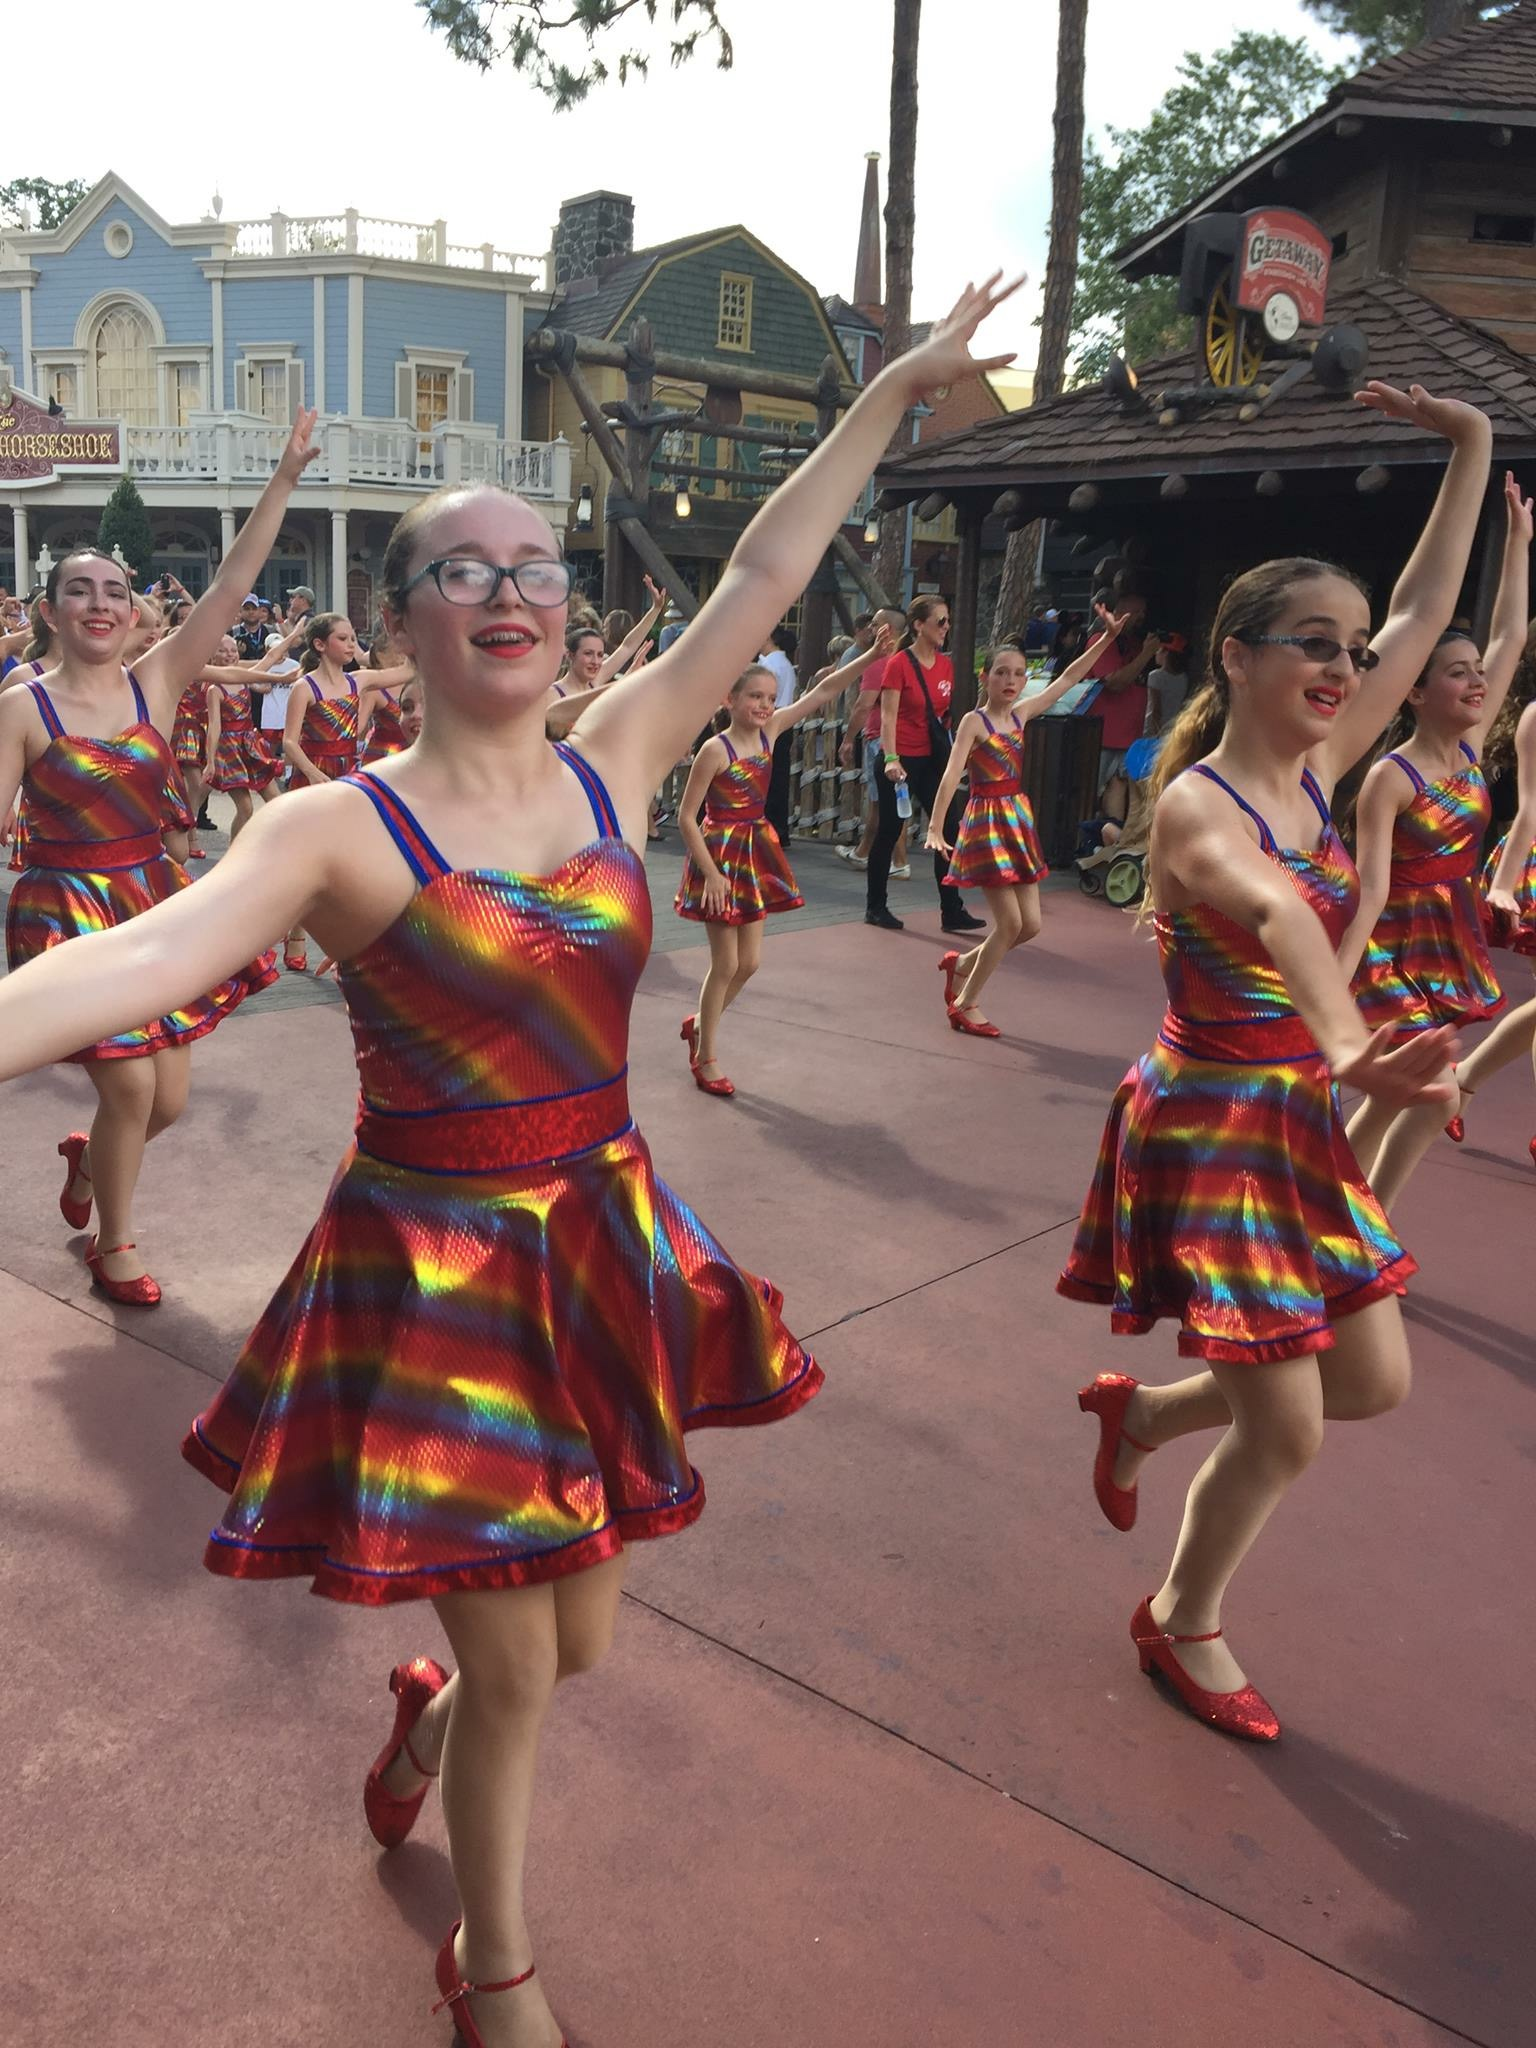 Performances:  -Melrose Victorian Fair & other local events  -Tufts Floating Hospital For Children  -Two to three Competitions (February, March, April, and/or May)  -Dress Rehearsal and Recital (end of May or beginning of June)  -Sporting events (Boston Celtics, Providence Bruins, Boston Red Sox games etc.)  -Optional trips we have taken: New York (Dance The World Broadway & the Rockette Experience), Walt Disney World (Dance the World Disney, Disney Performing Arts Program)